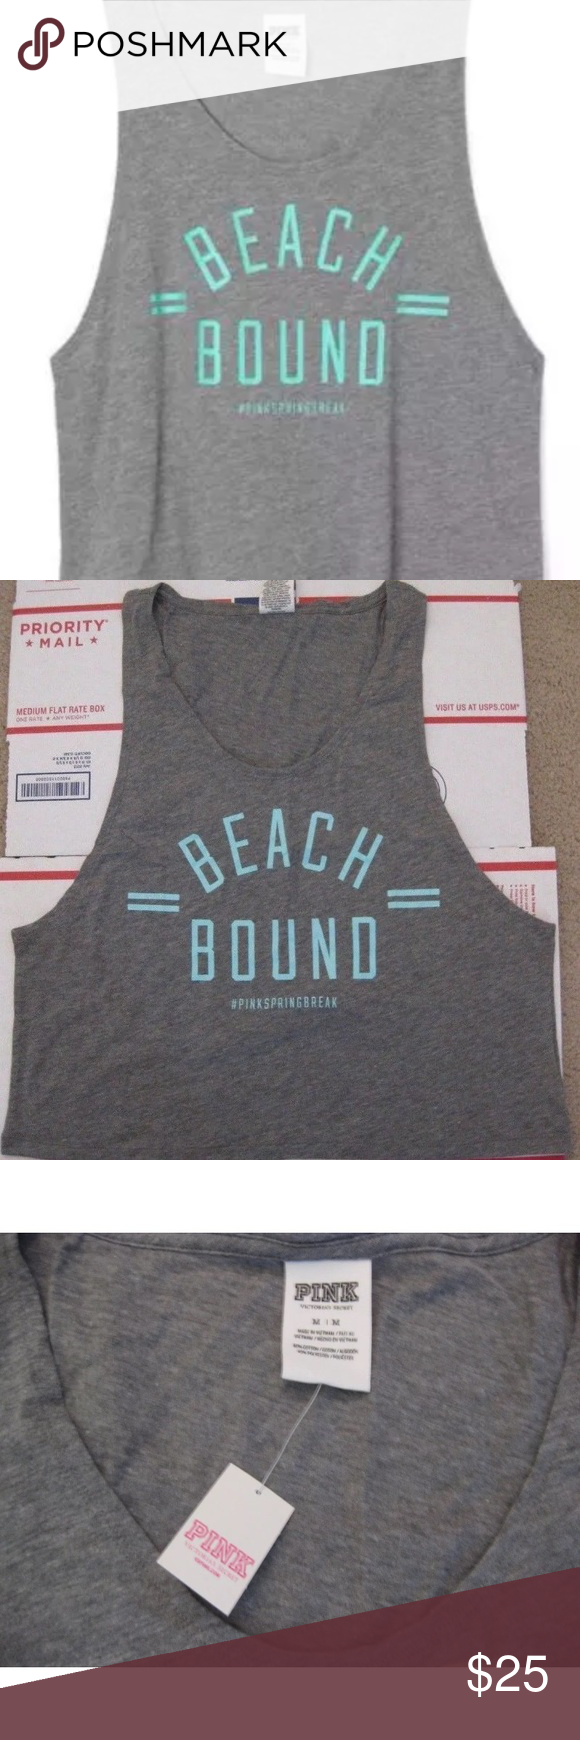 Victoria's Secret PINK Beach Bound tank Summer Brand new with tags. Medium. PINK Victoria's Secret Tops Muscle Tees